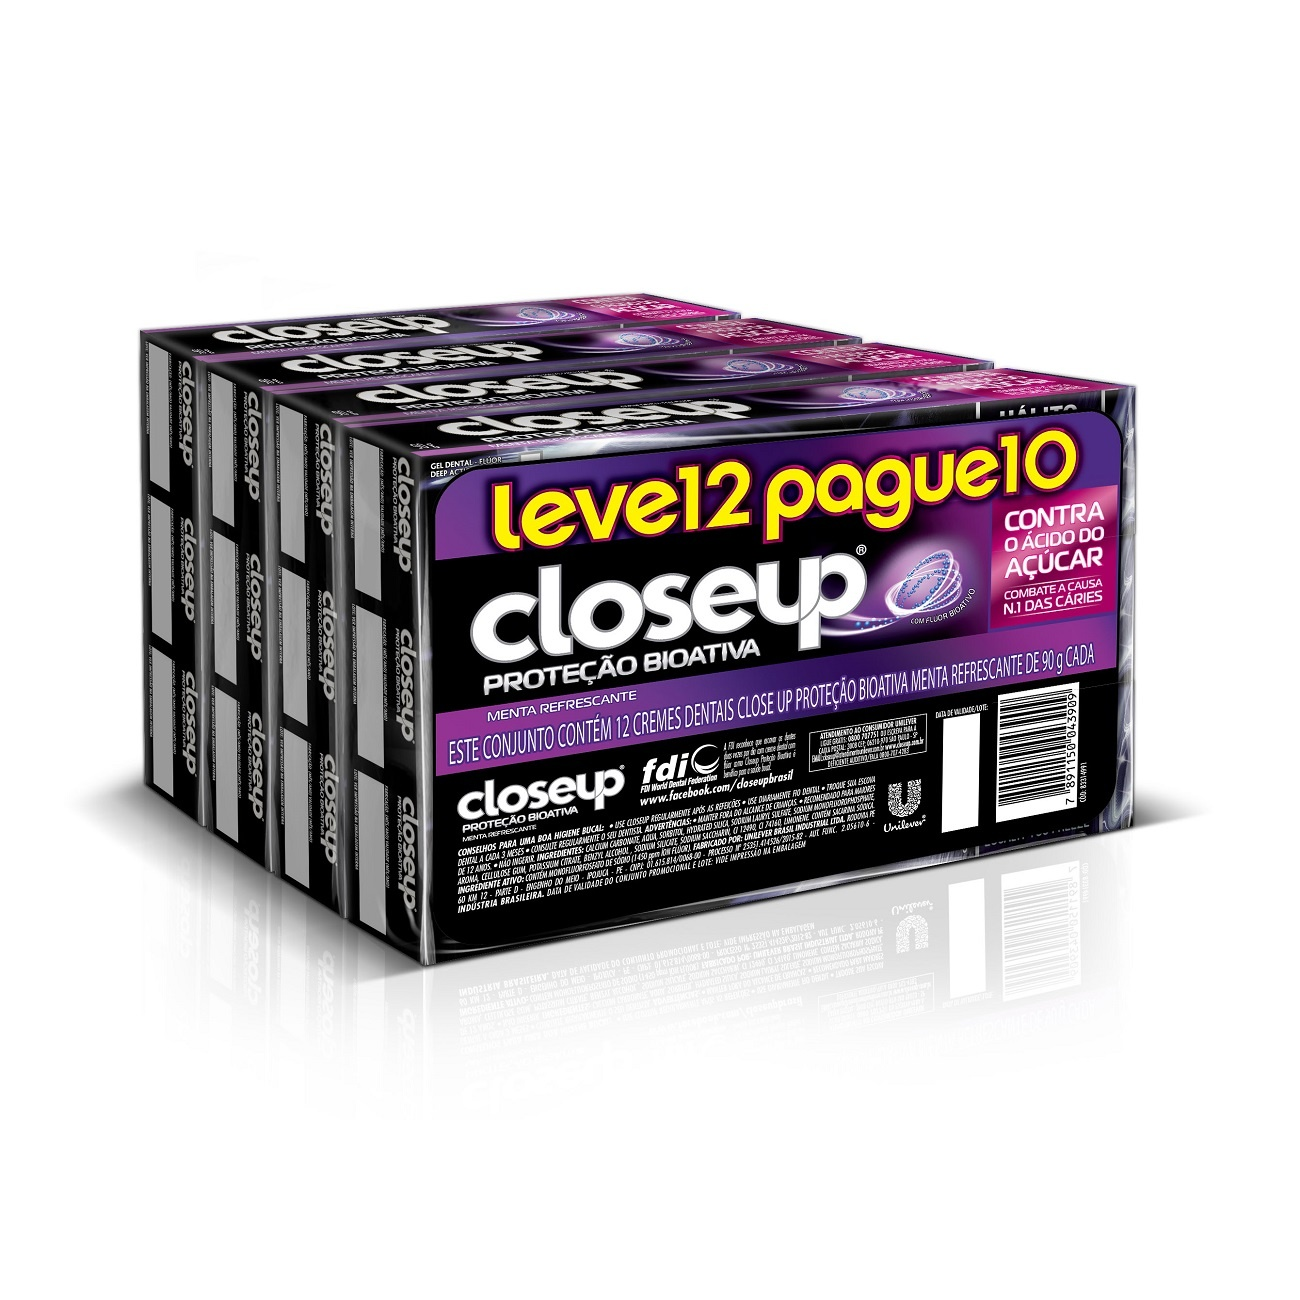 Oferta Leve 12 Pague 10 Creme Dental Close Up Prote��o Bioativa 90g